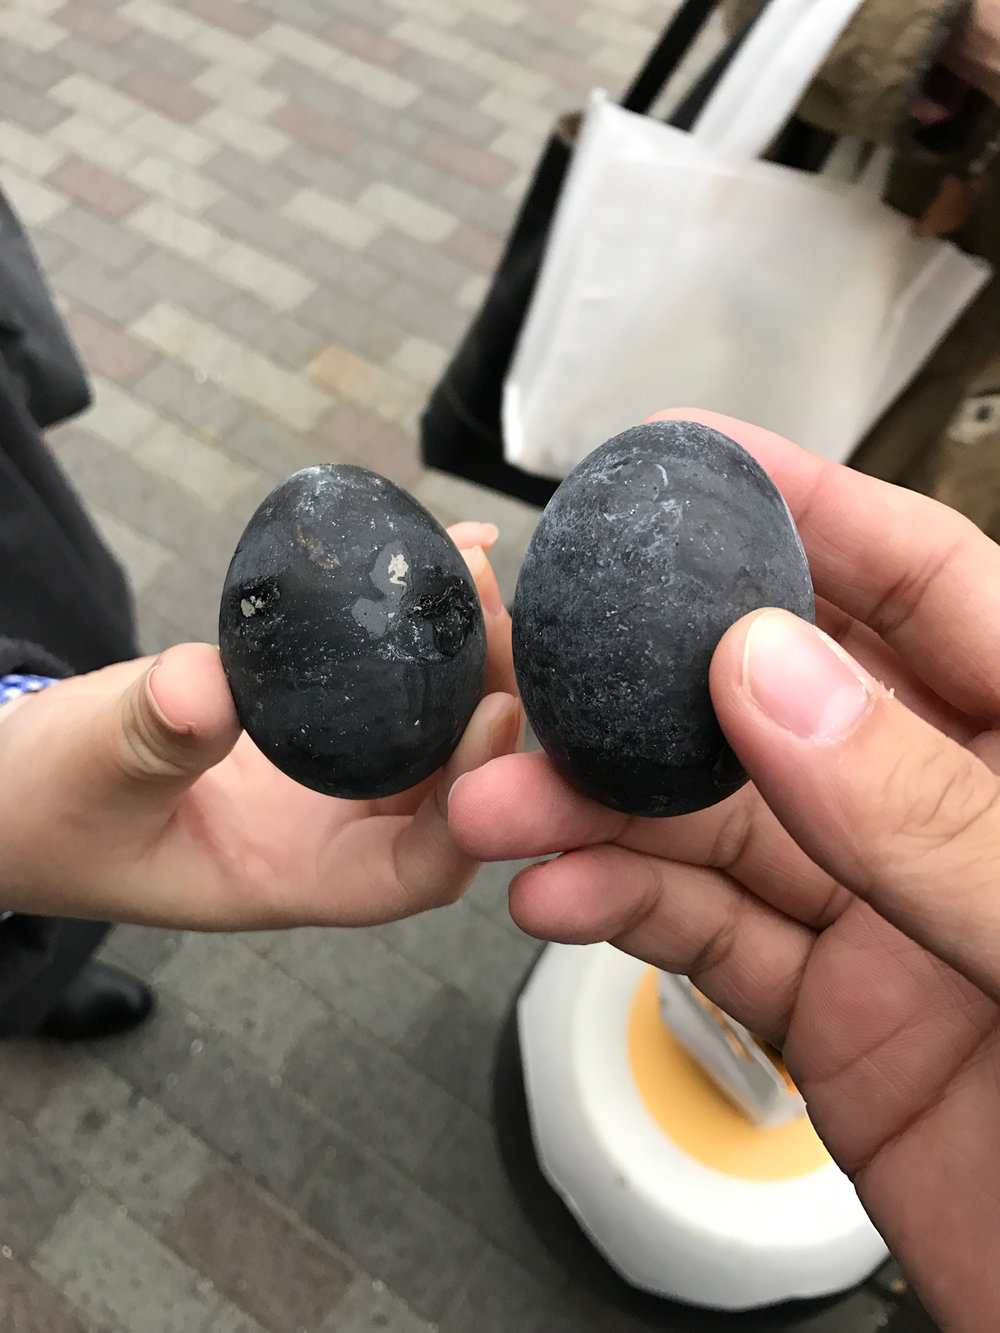 Owakudani black eggs. They're regular chicken eggs, only the shell turned black due to being boiled in hot sulphur spring. They say if you eat one, 7 years will be added to your life!